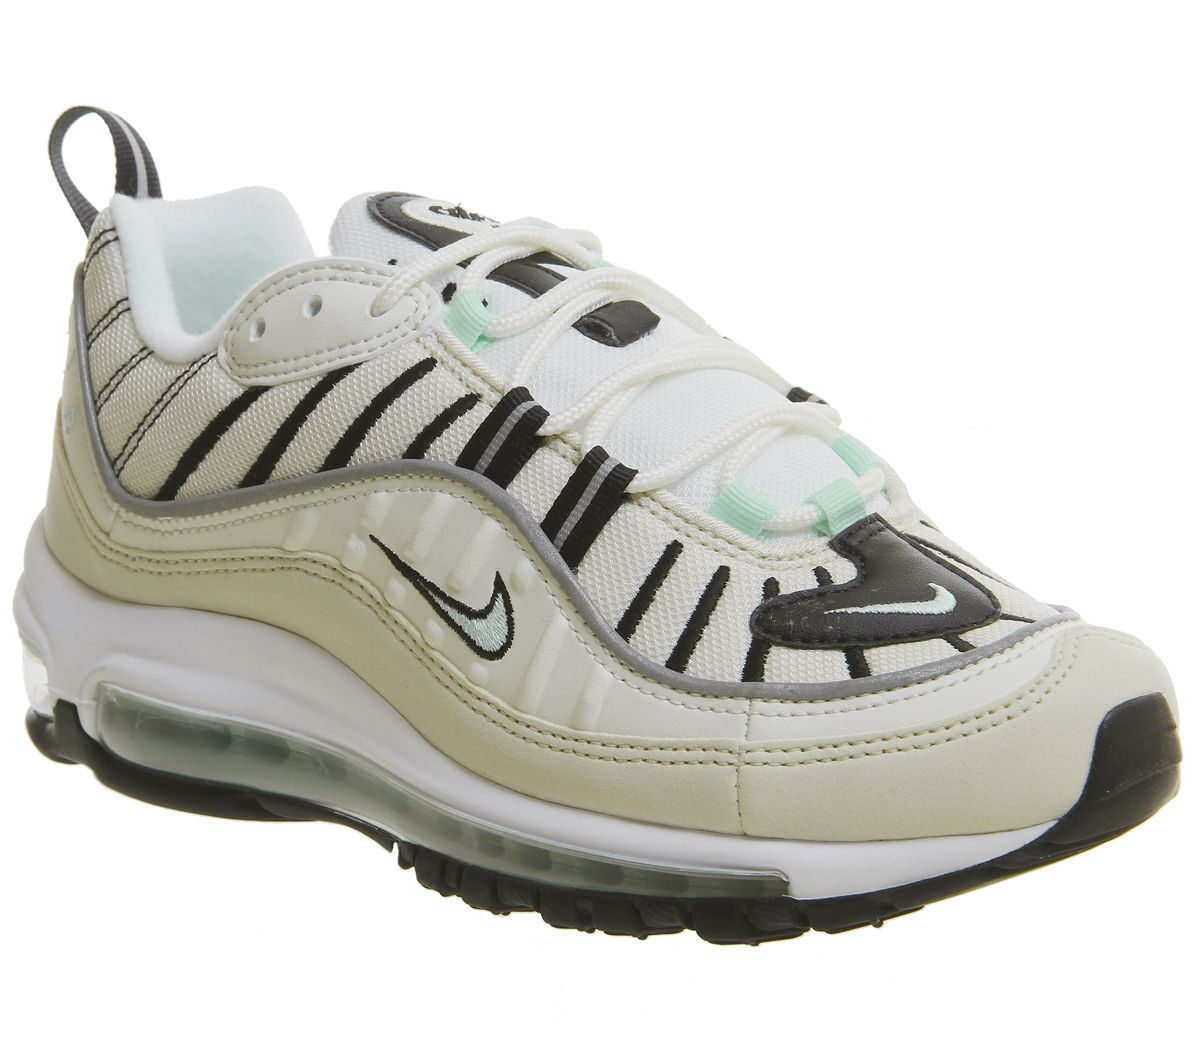 best service a18b7 d23f3 Air Max 98 Trainers